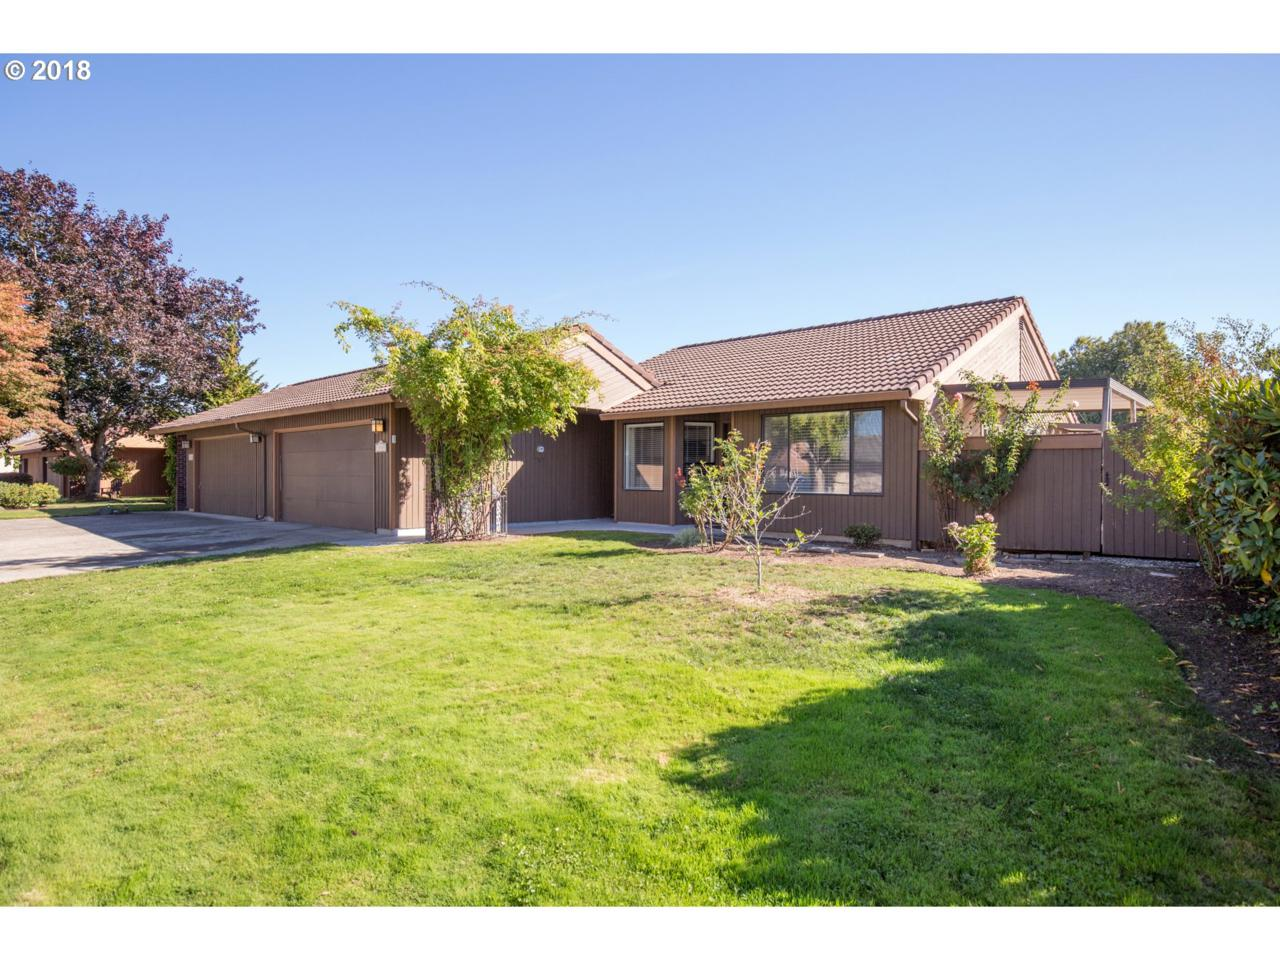 13509 Indian Spring Dr - Photo 1